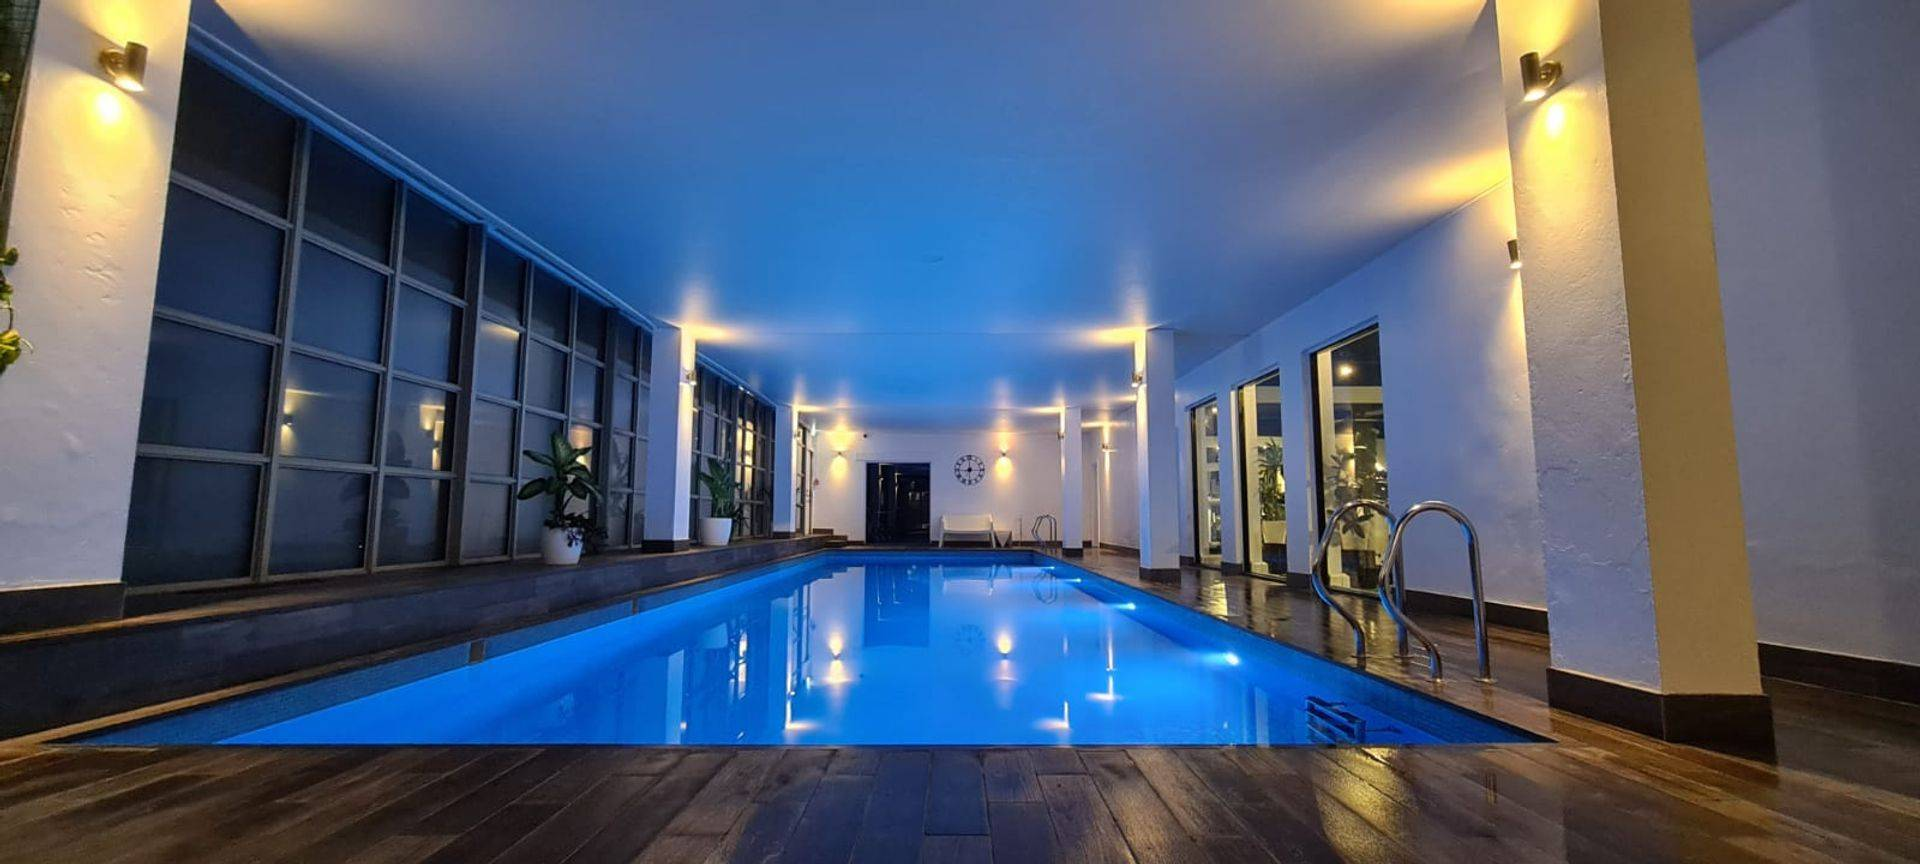 luxury pool swimming lessons in london